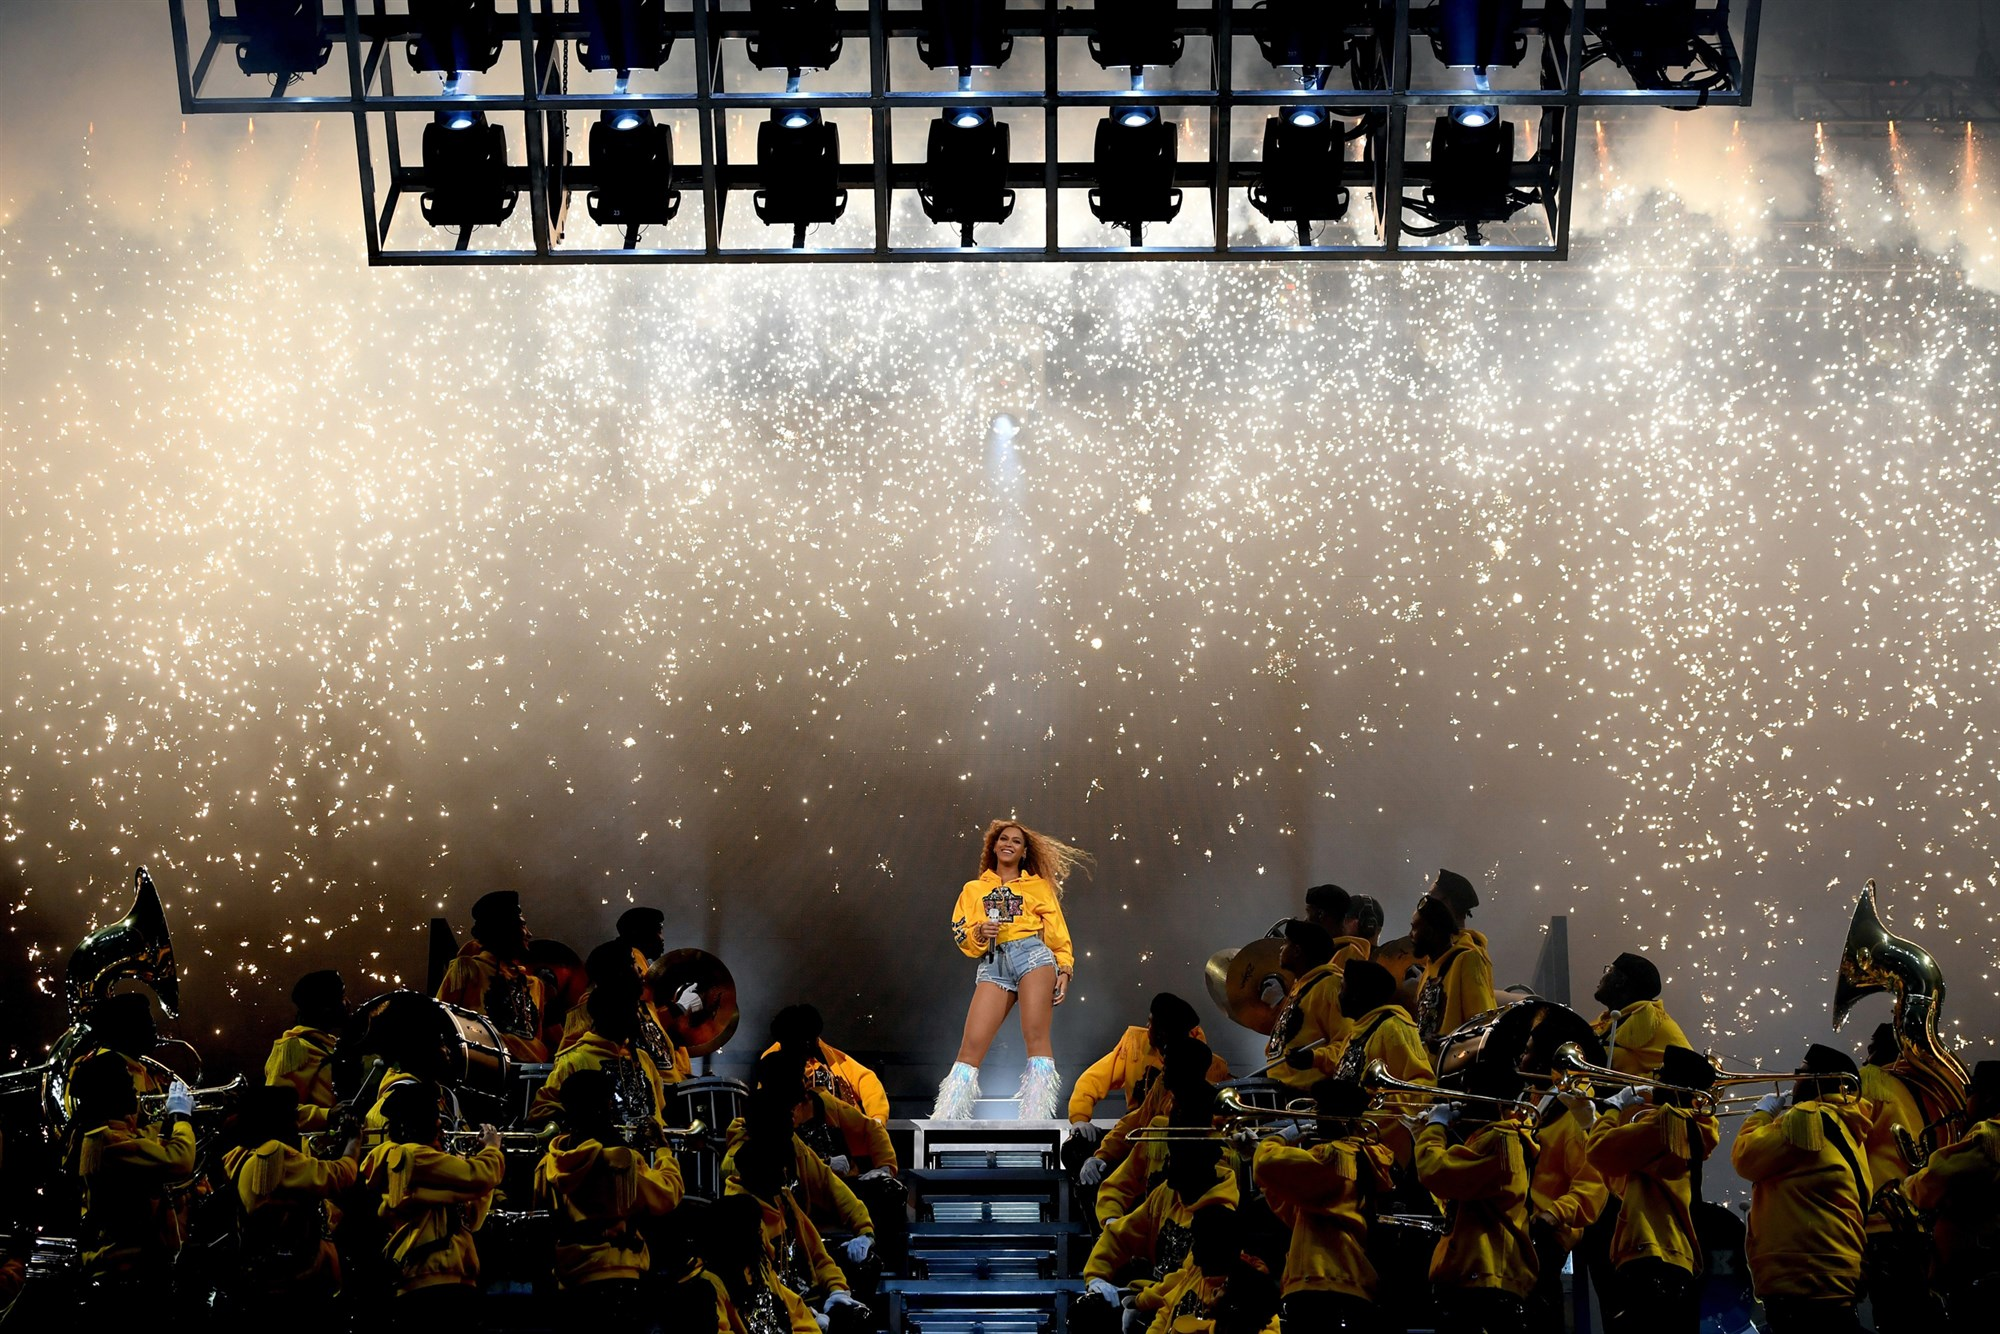 Larry Busacca for Getty Images / Beyoncé's Coachella Performance (2018)